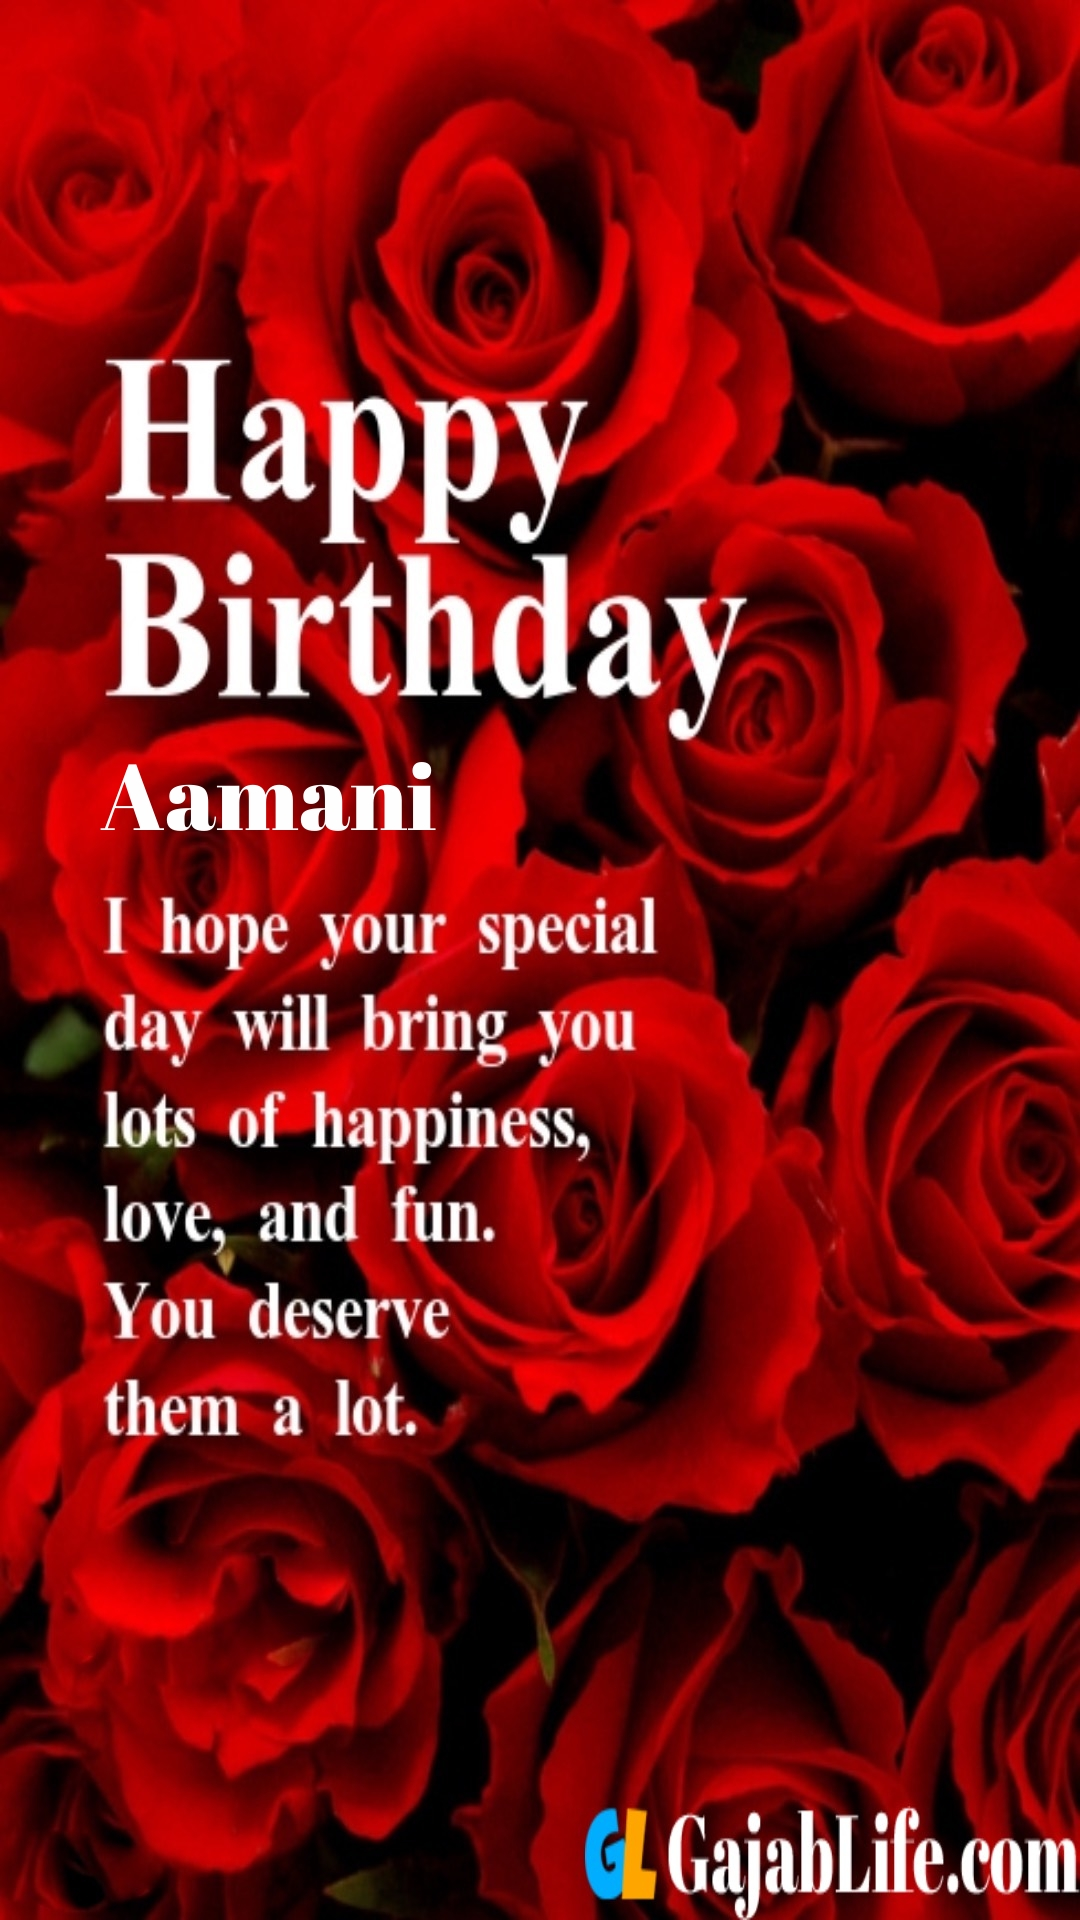 Aamani birthday greeting card with rose & love